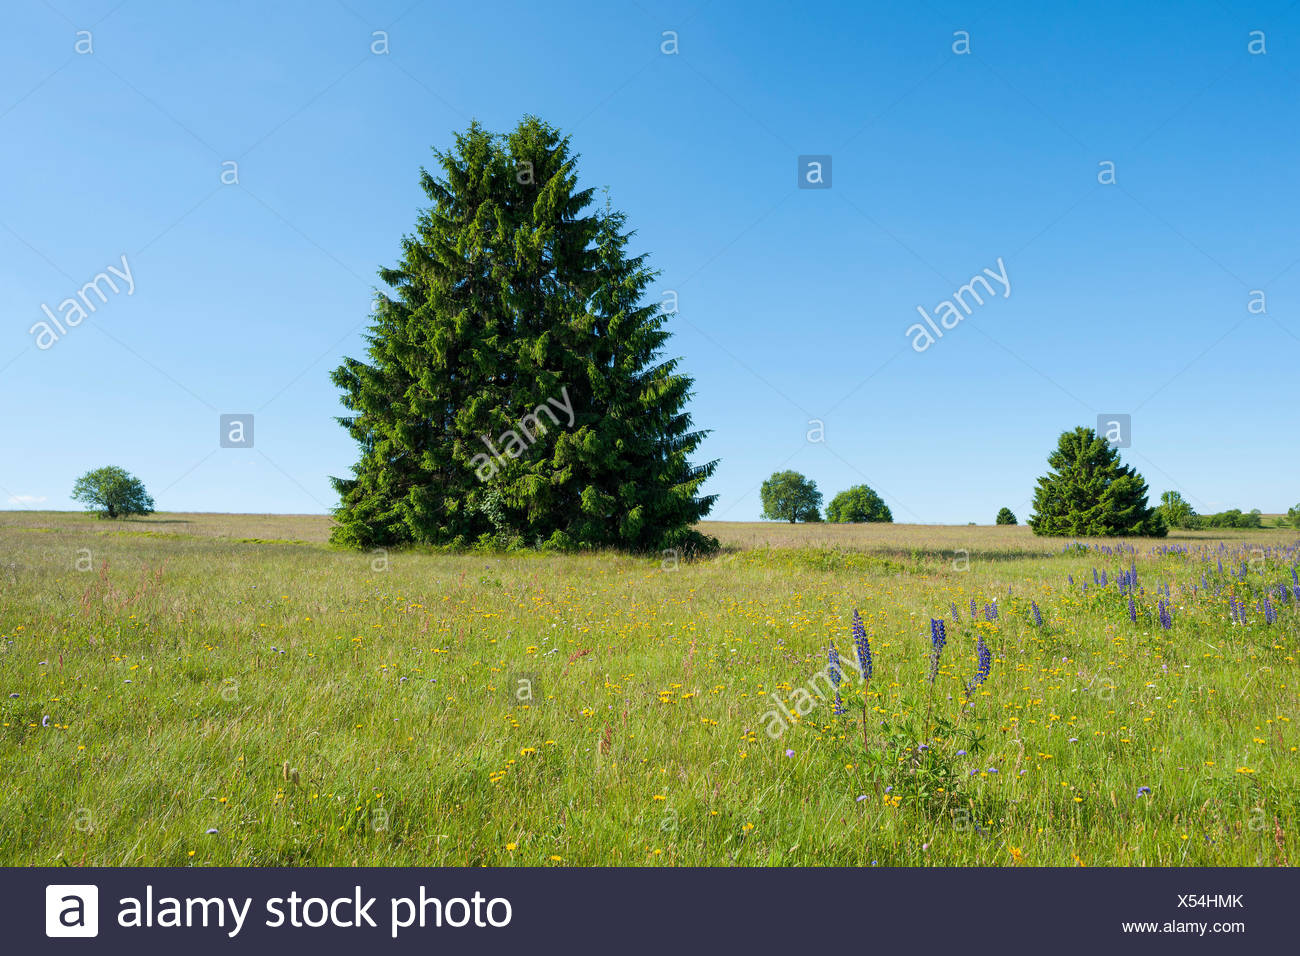 Norway spruces (Picea abies) in a meadow,Lange Rhön Nature Reserve,Rhön Biosphere Reserve,Bavaria,Germany - Stock Image